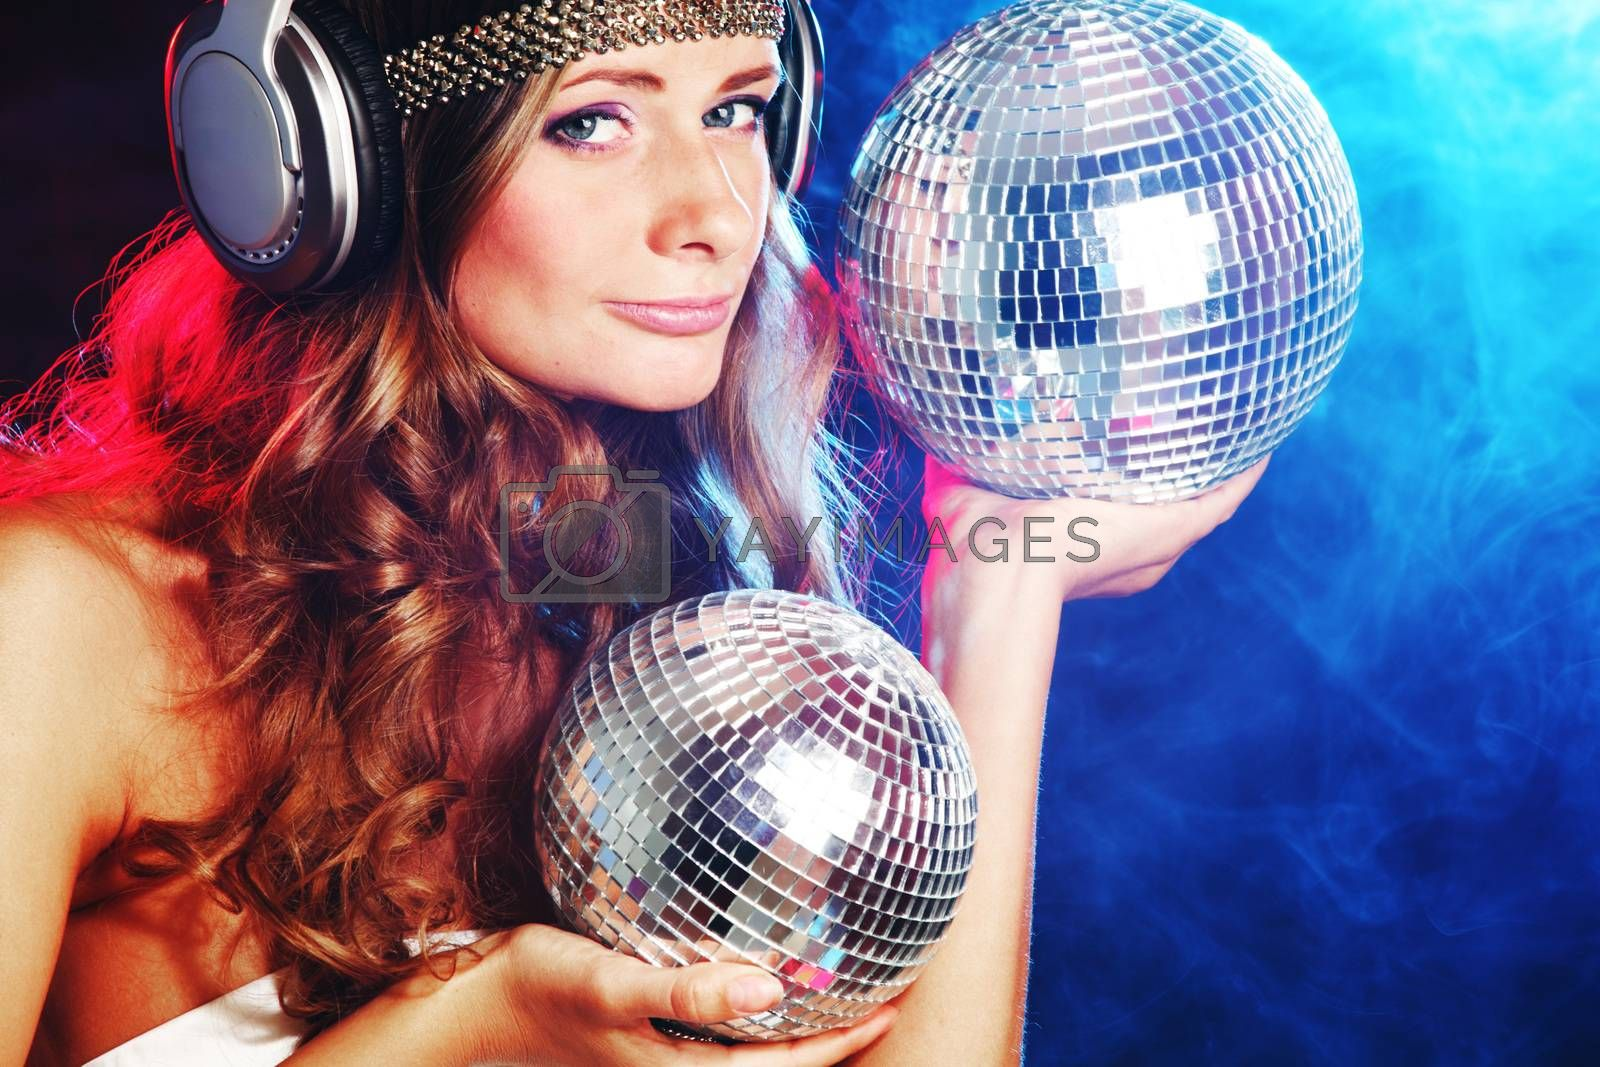 Disco girl enjoys music in head phones holding mirror disco ball over black and colorful smoke background